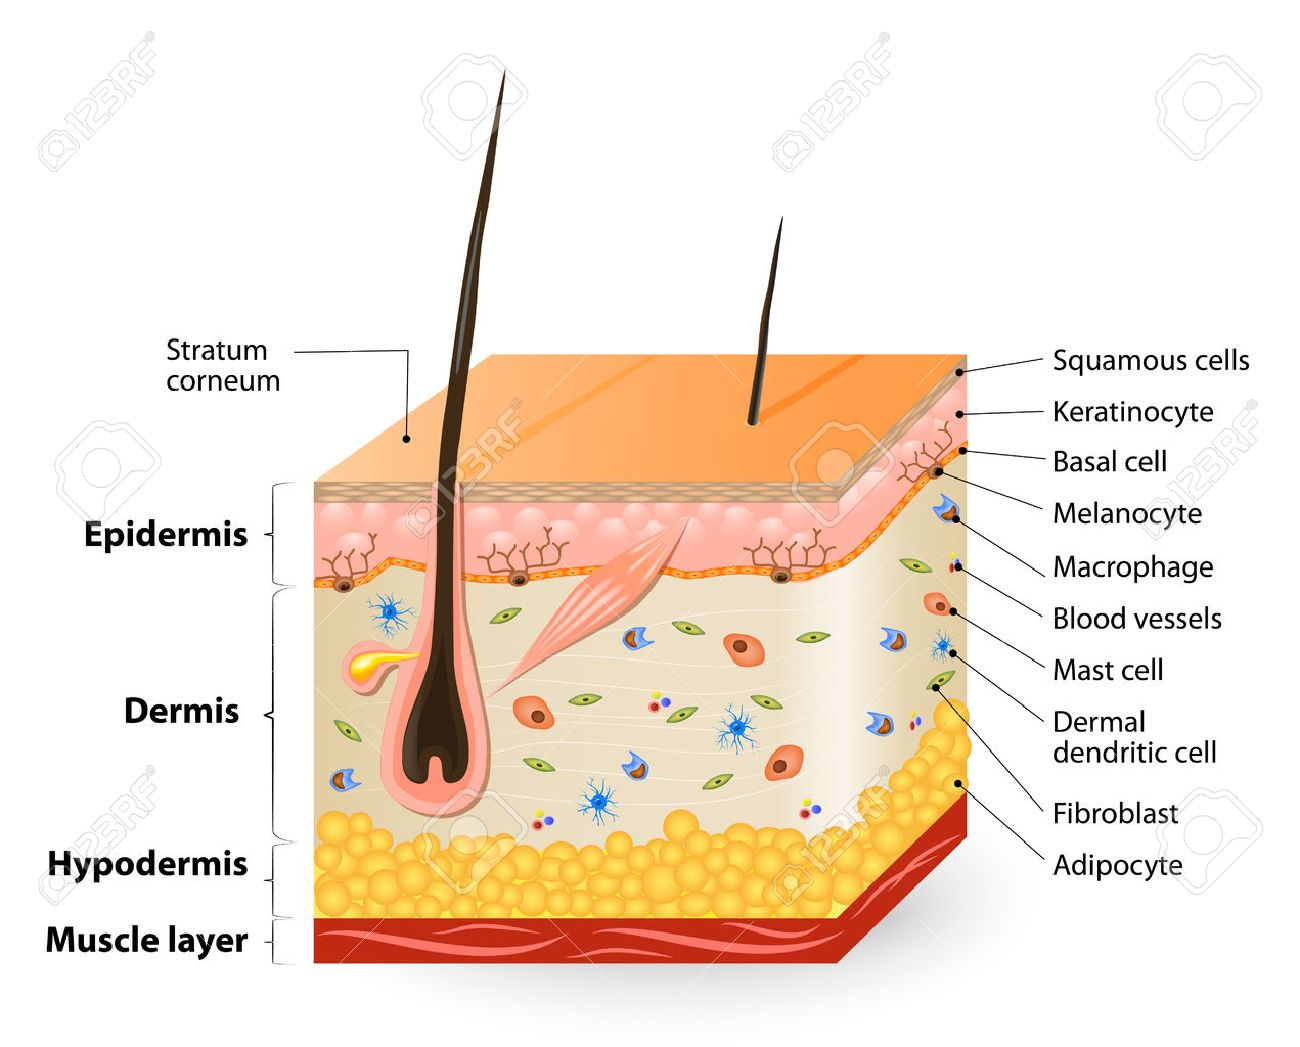 Structure of the human skin anatomy diagram different cell types structure of the human skin anatomy diagram different cell types populating the skin pooptronica